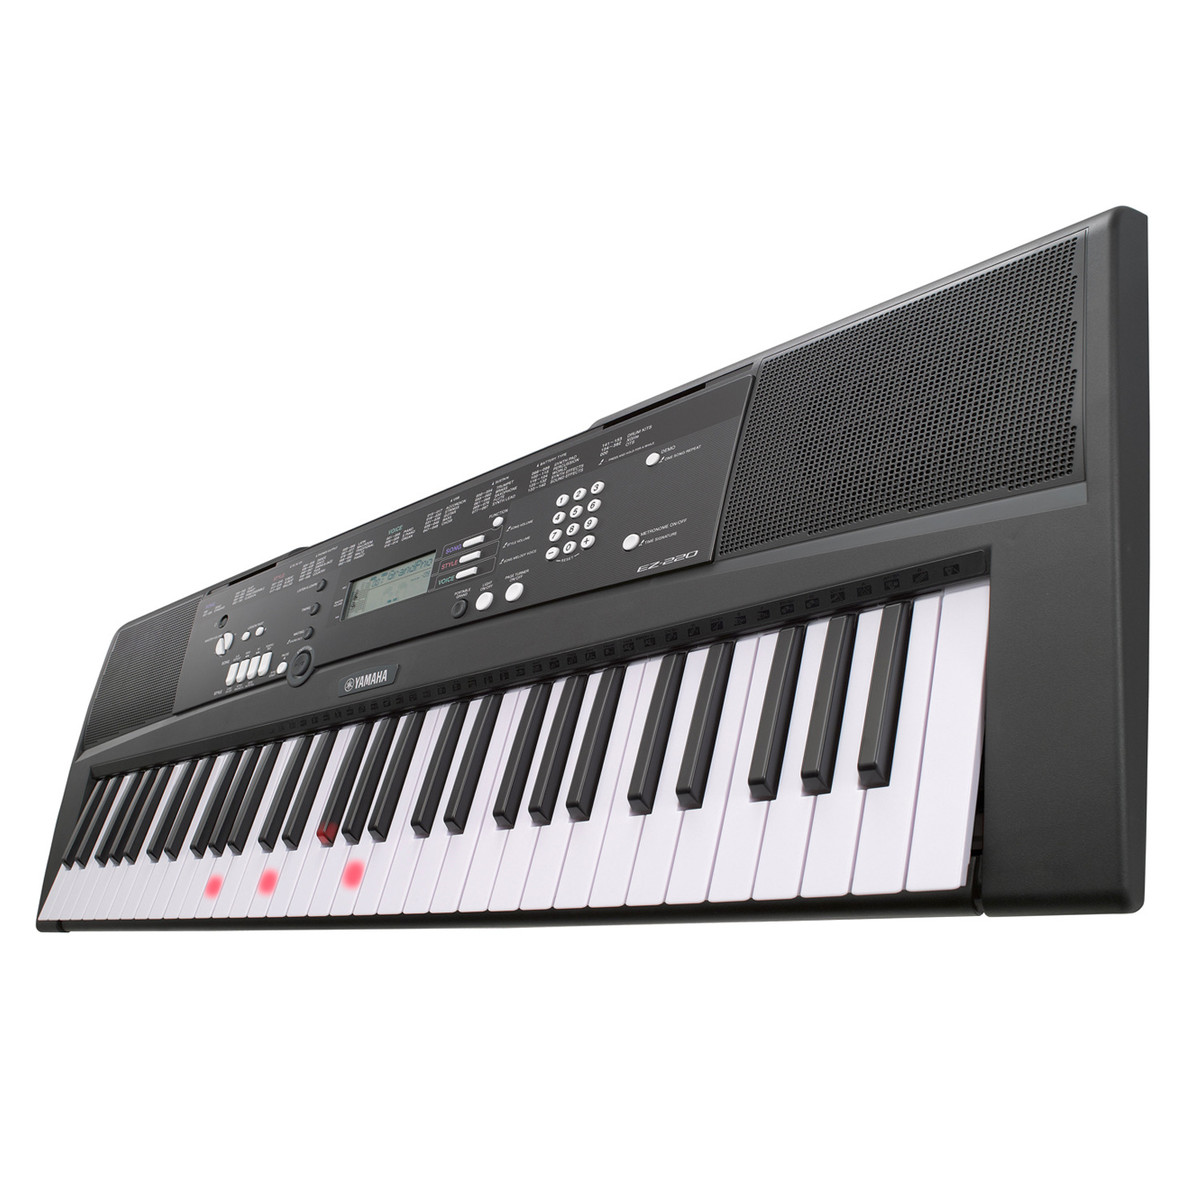 Yamaha EZ-220 Keylighting Home Keyboard